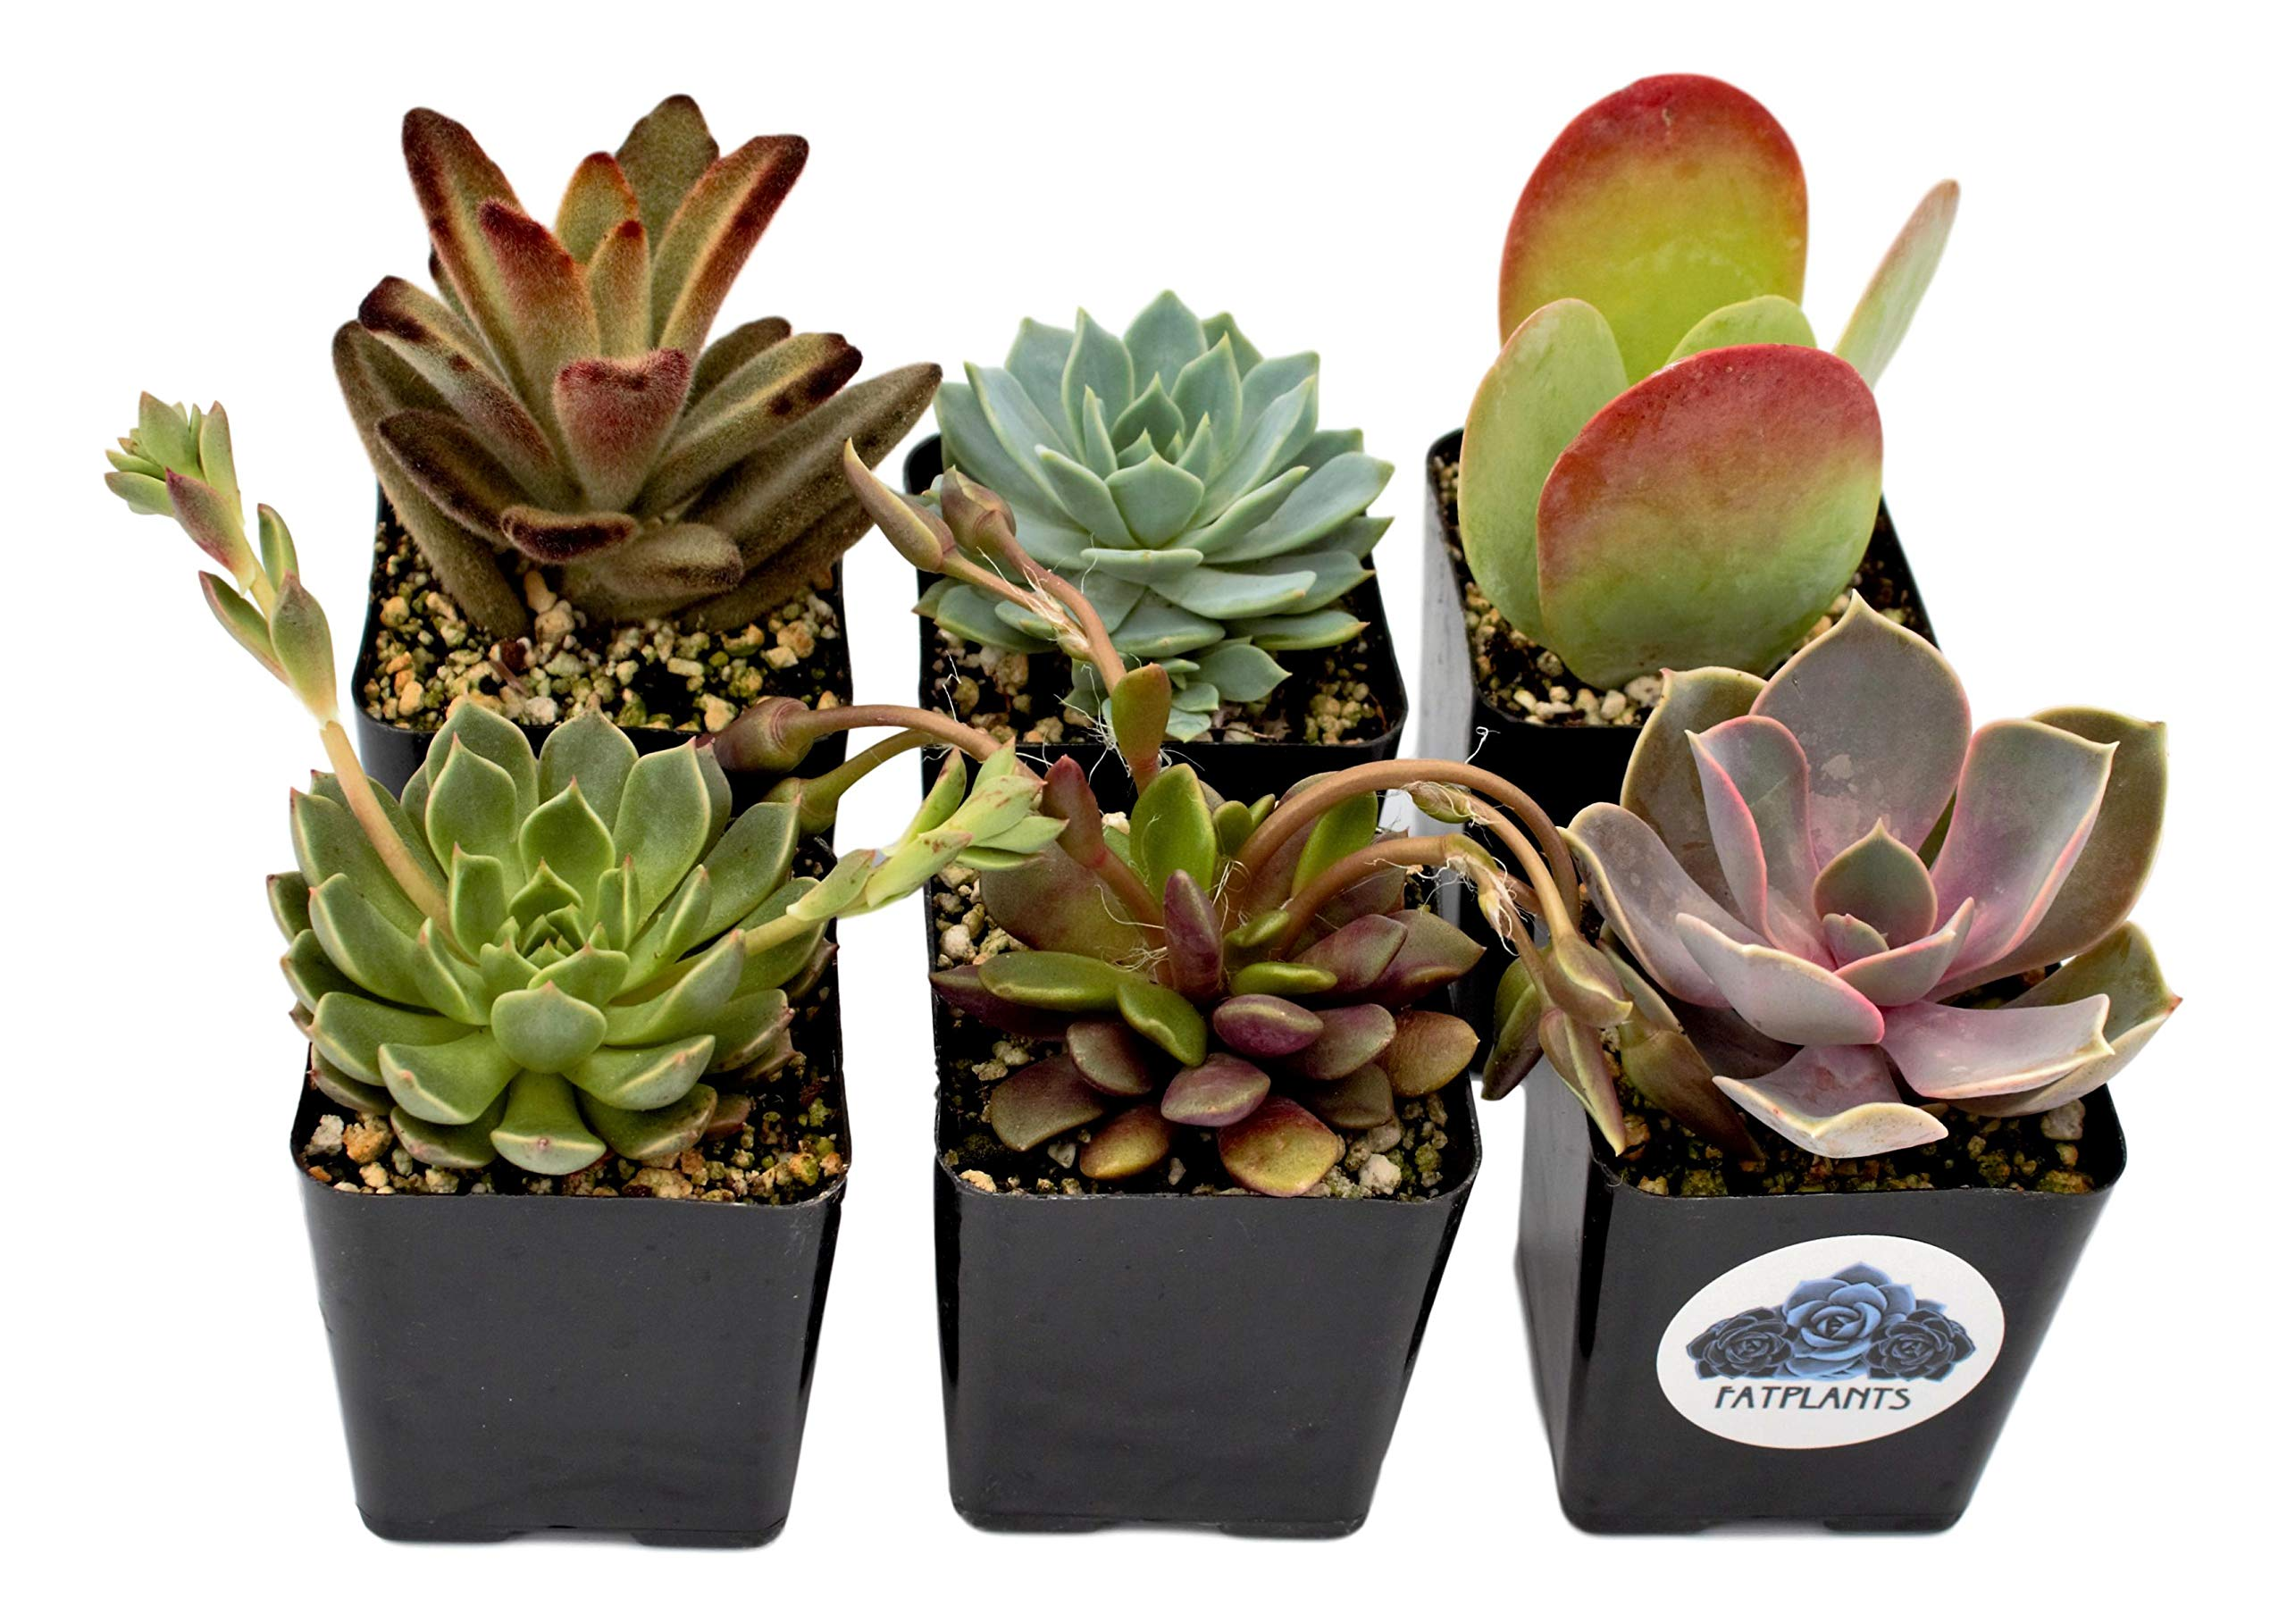 Fat Plants San Diego Premium Succulent Plant Variety Package. Live Indoor Succulents Rooted in Soil in a Plastic Growers Pot (6)